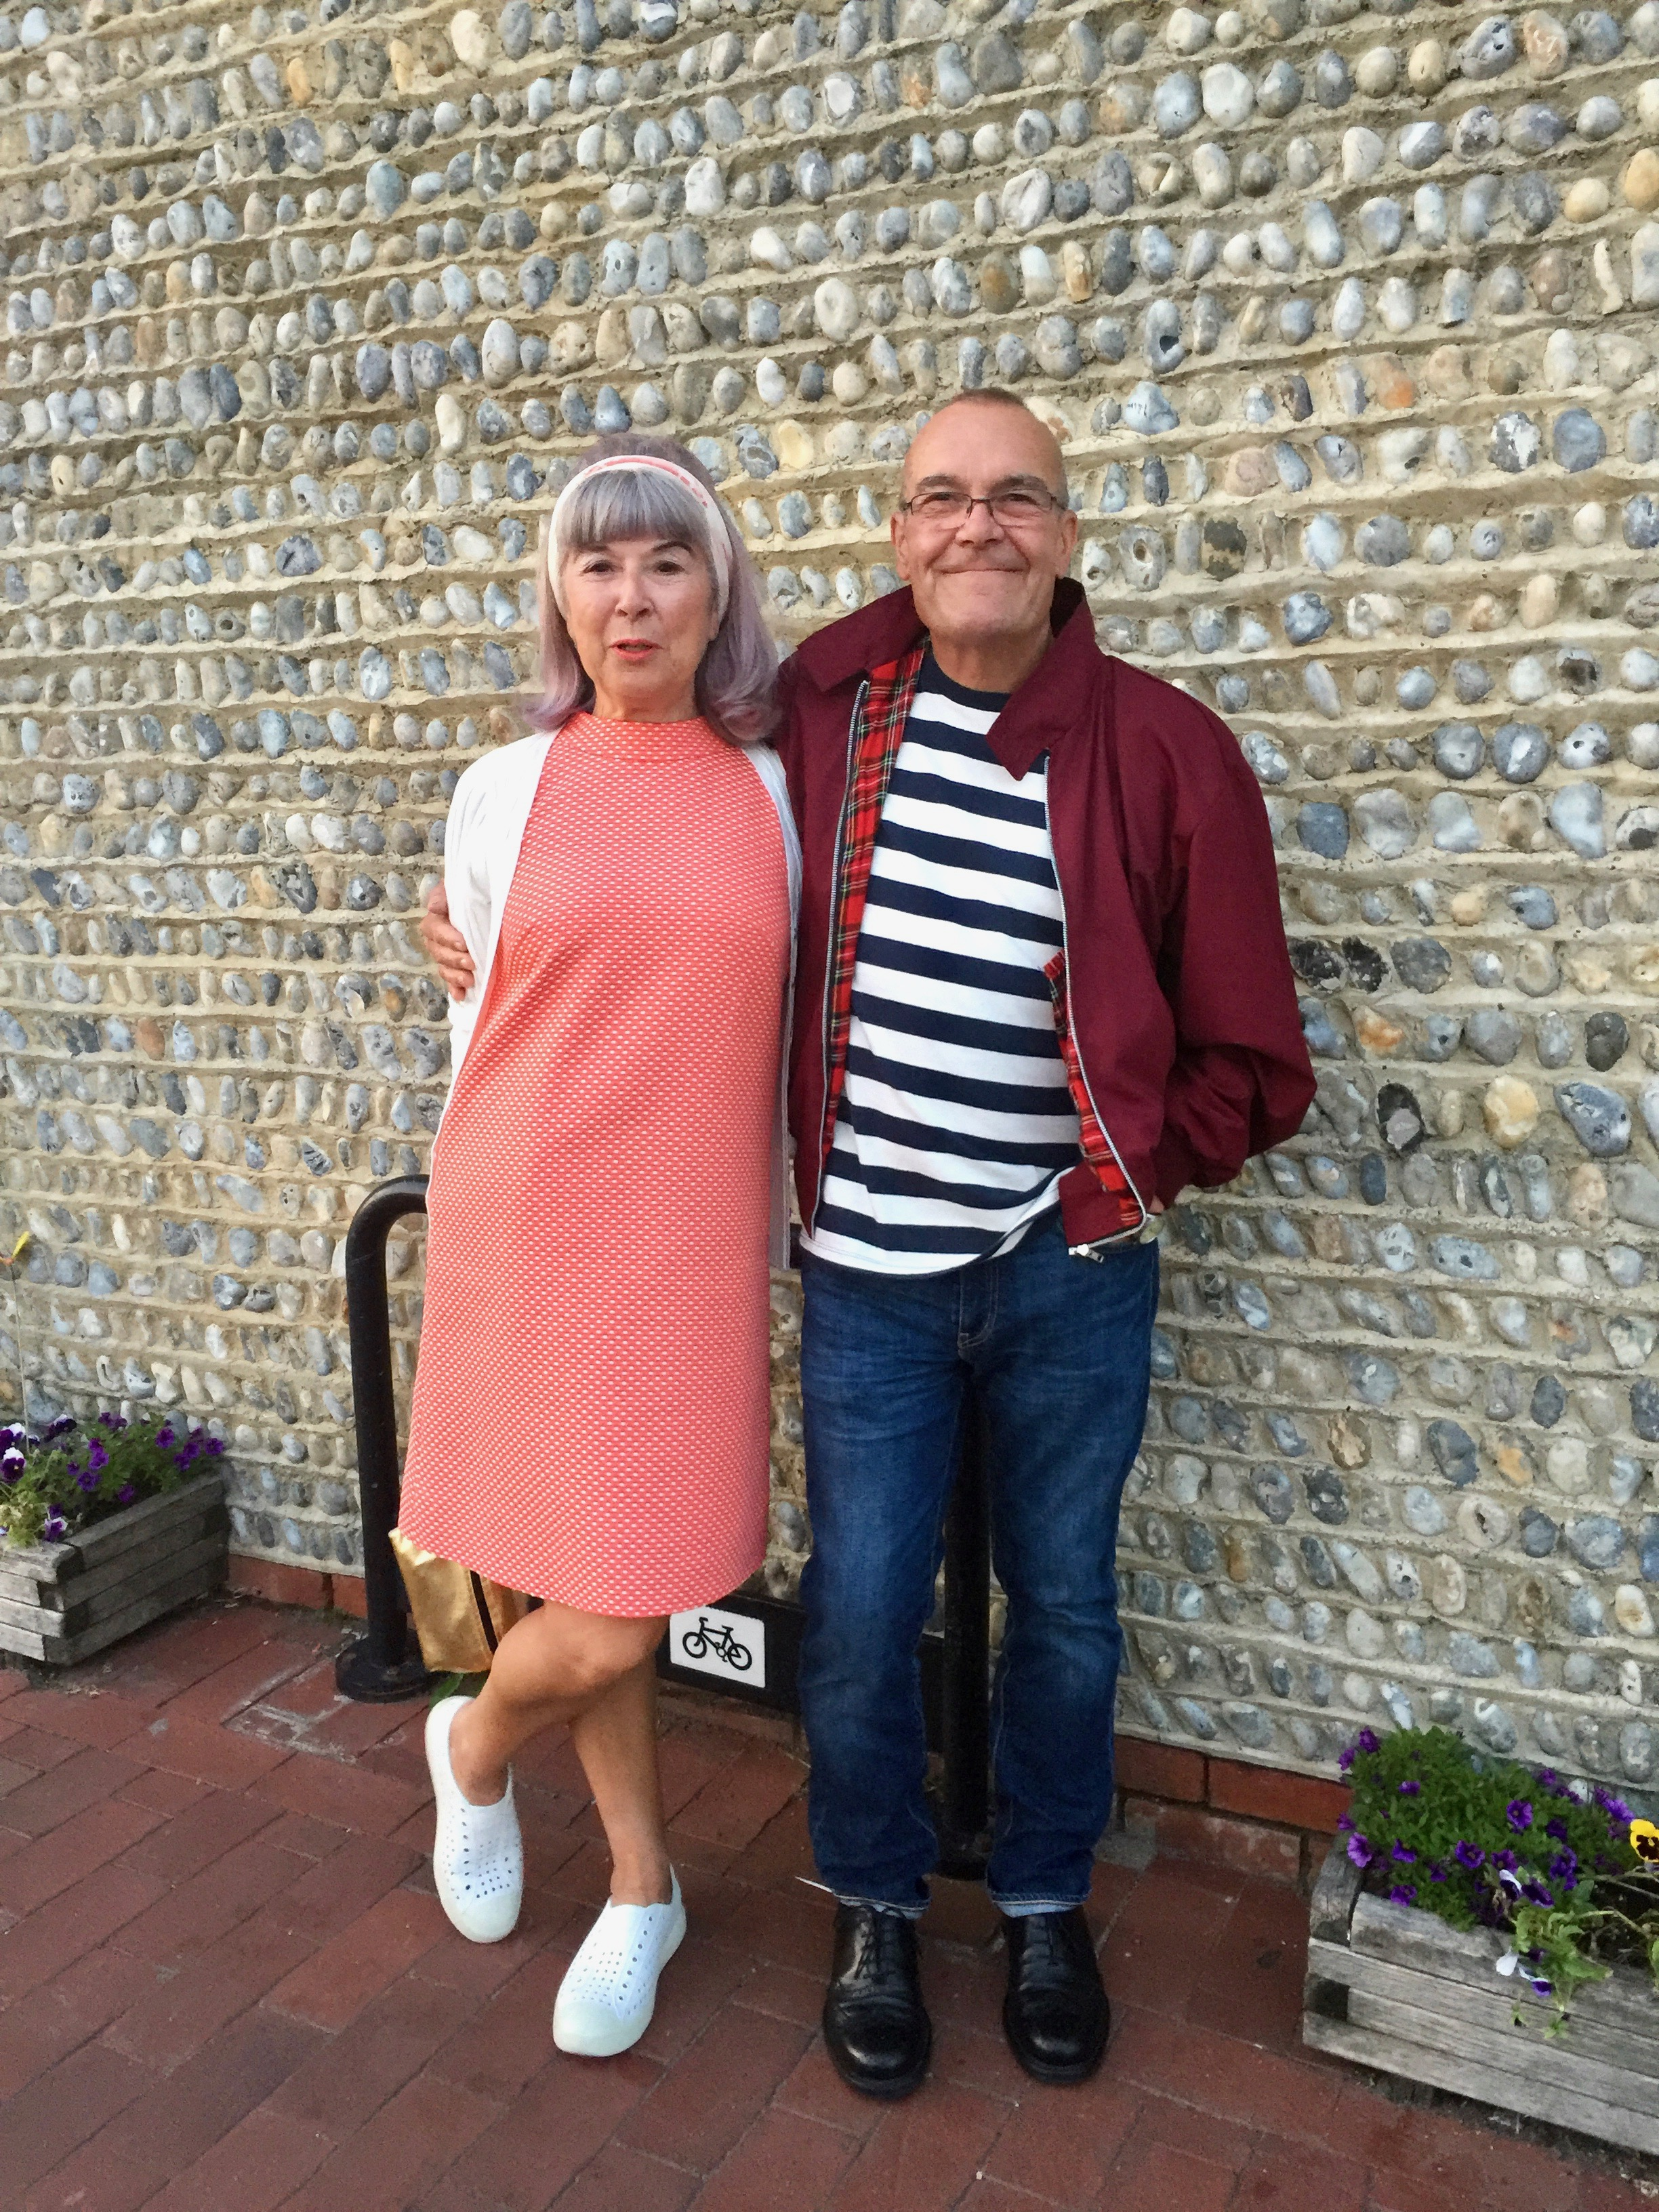 Trying to look like mods, for the mod weekend in brighton!